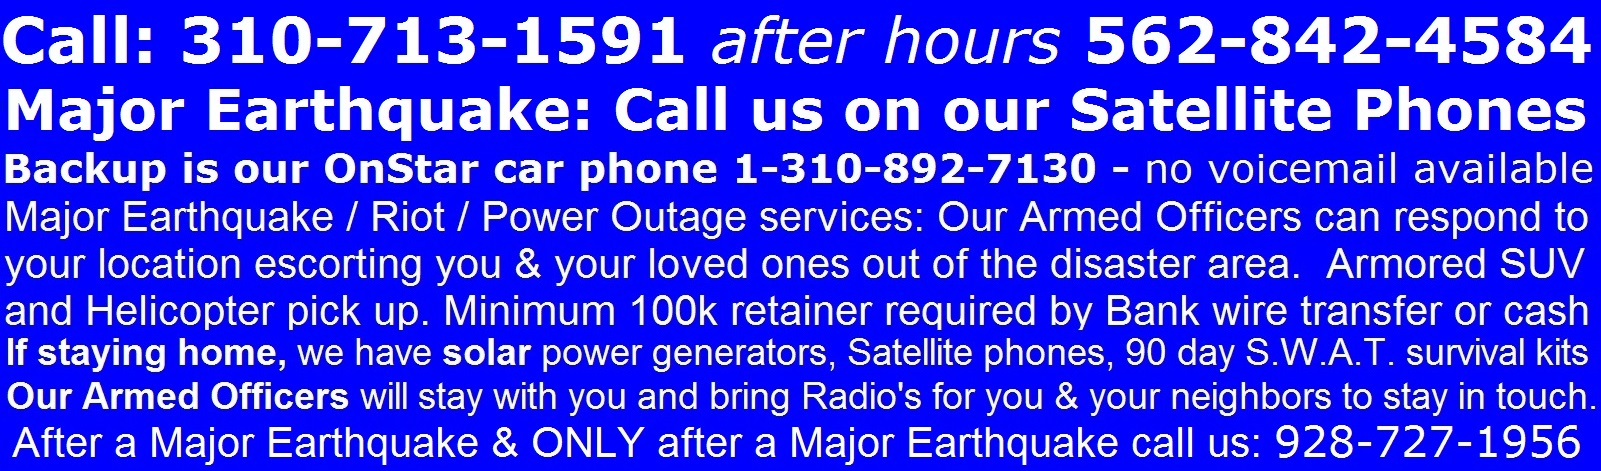 After a Major Earthquake & ONLY after a Major Earthquake call us: 928-727-1956